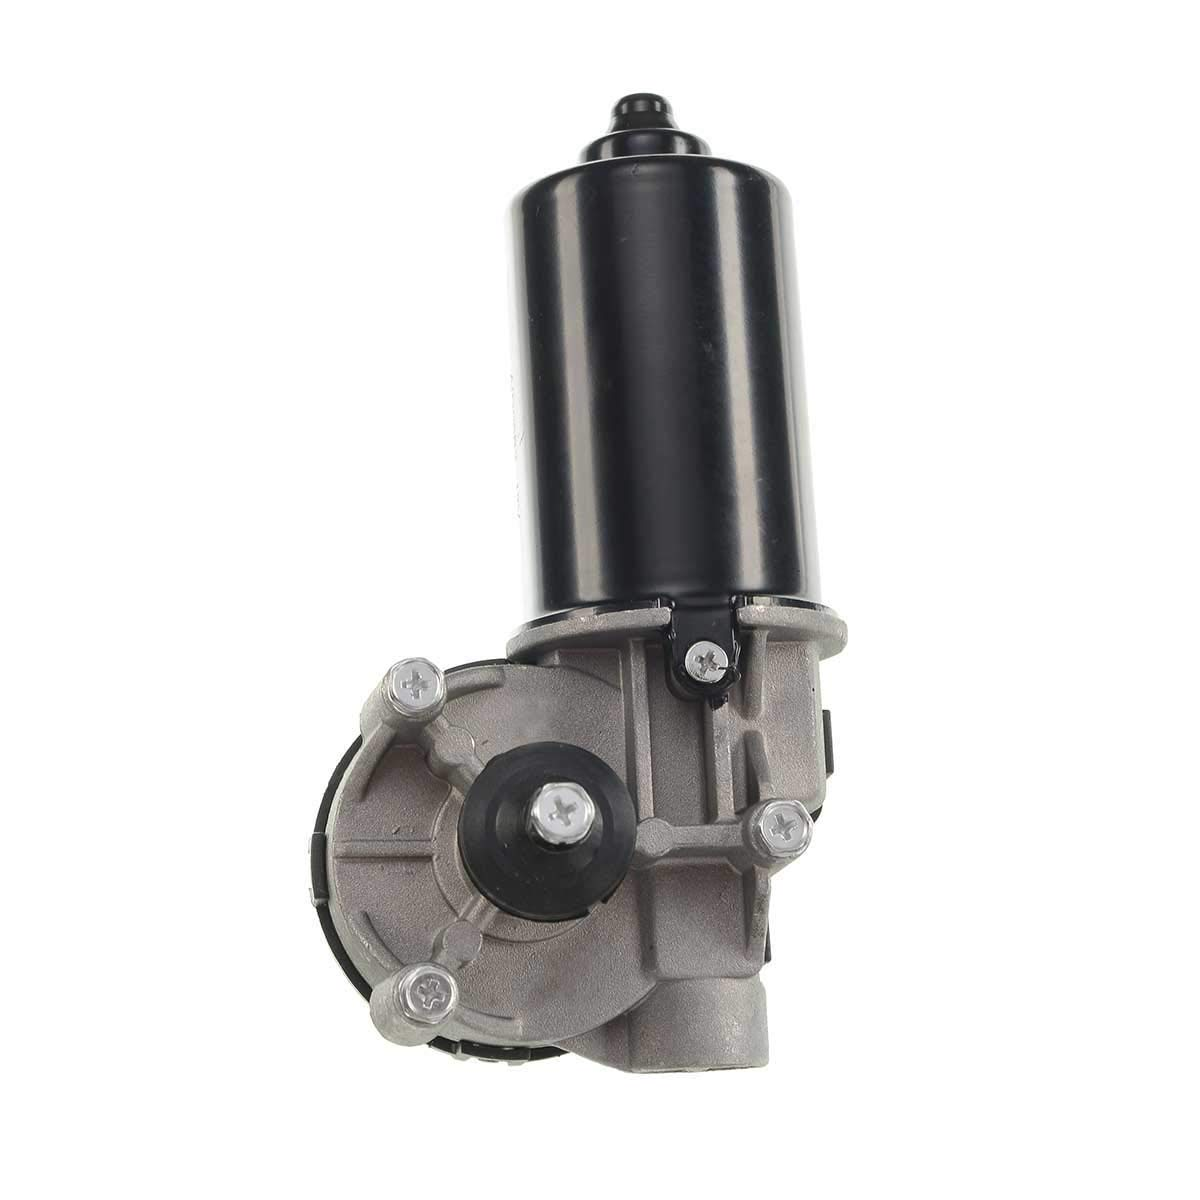 Replacement Parts A-Premium Windshield Wiper Motor without Washer ...